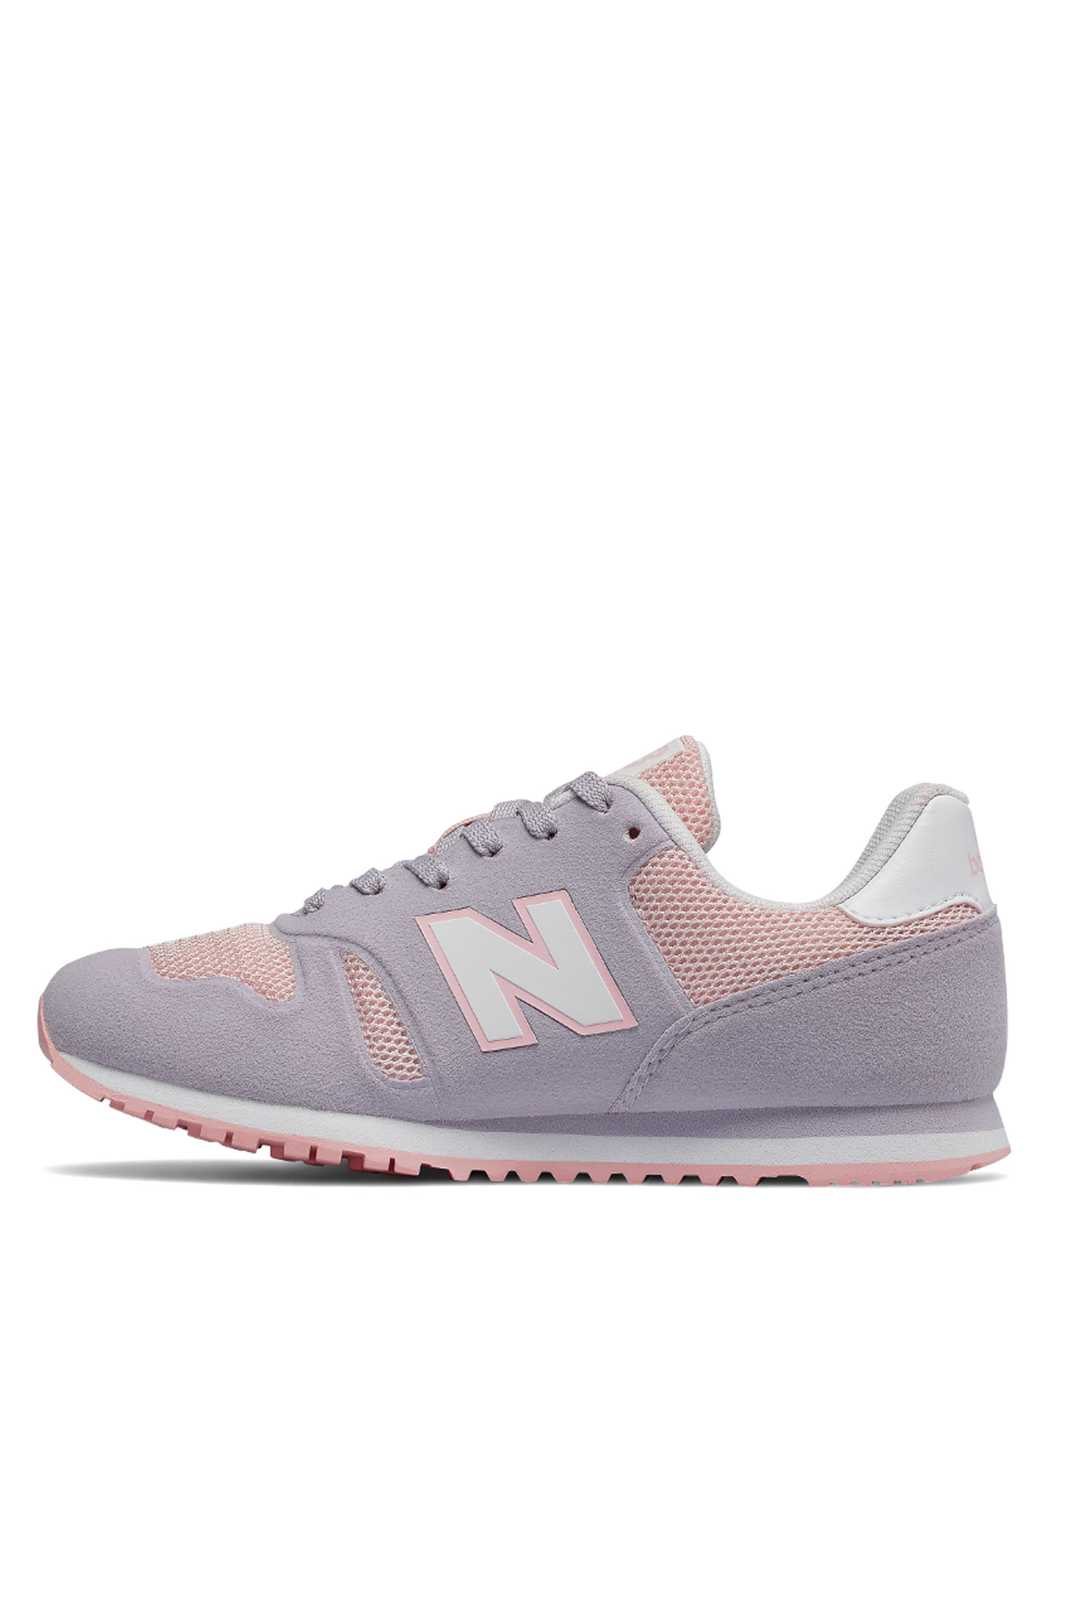 Baskets / Sneakers  New balance KD373P1Y parme